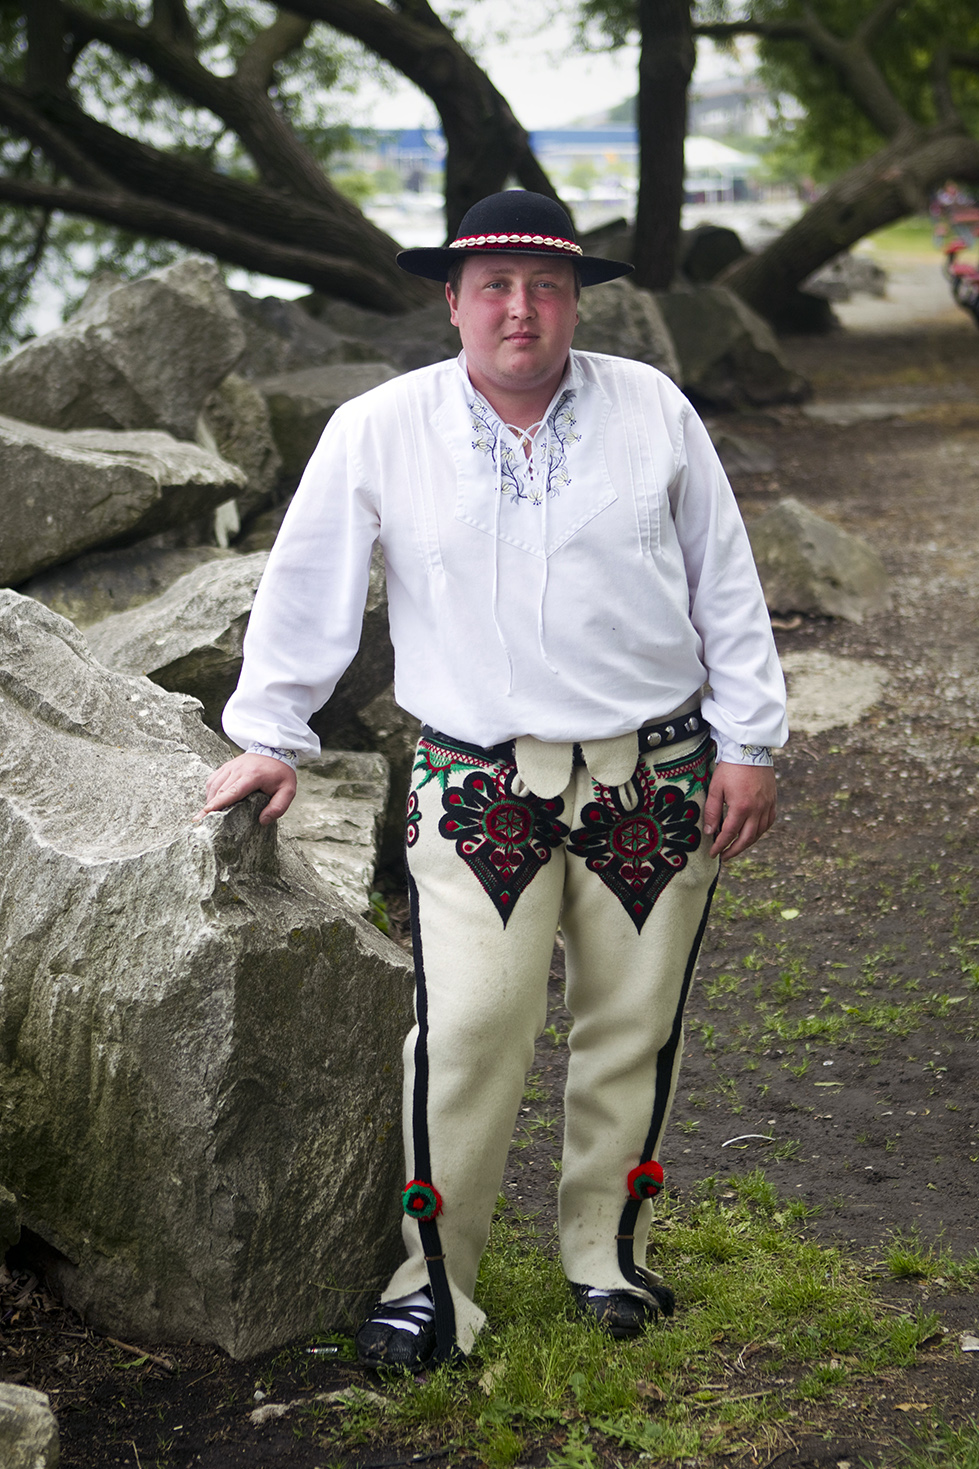 Michal Dzielski poses for a portrait in his traditional Polish outfit on Saturday, June 13, 2015 at Polish Fest. For men, a traditional outfit includes a white shirt and a hat with shells for decoration. The heart-shaped design on his trousers is known as parzenica.